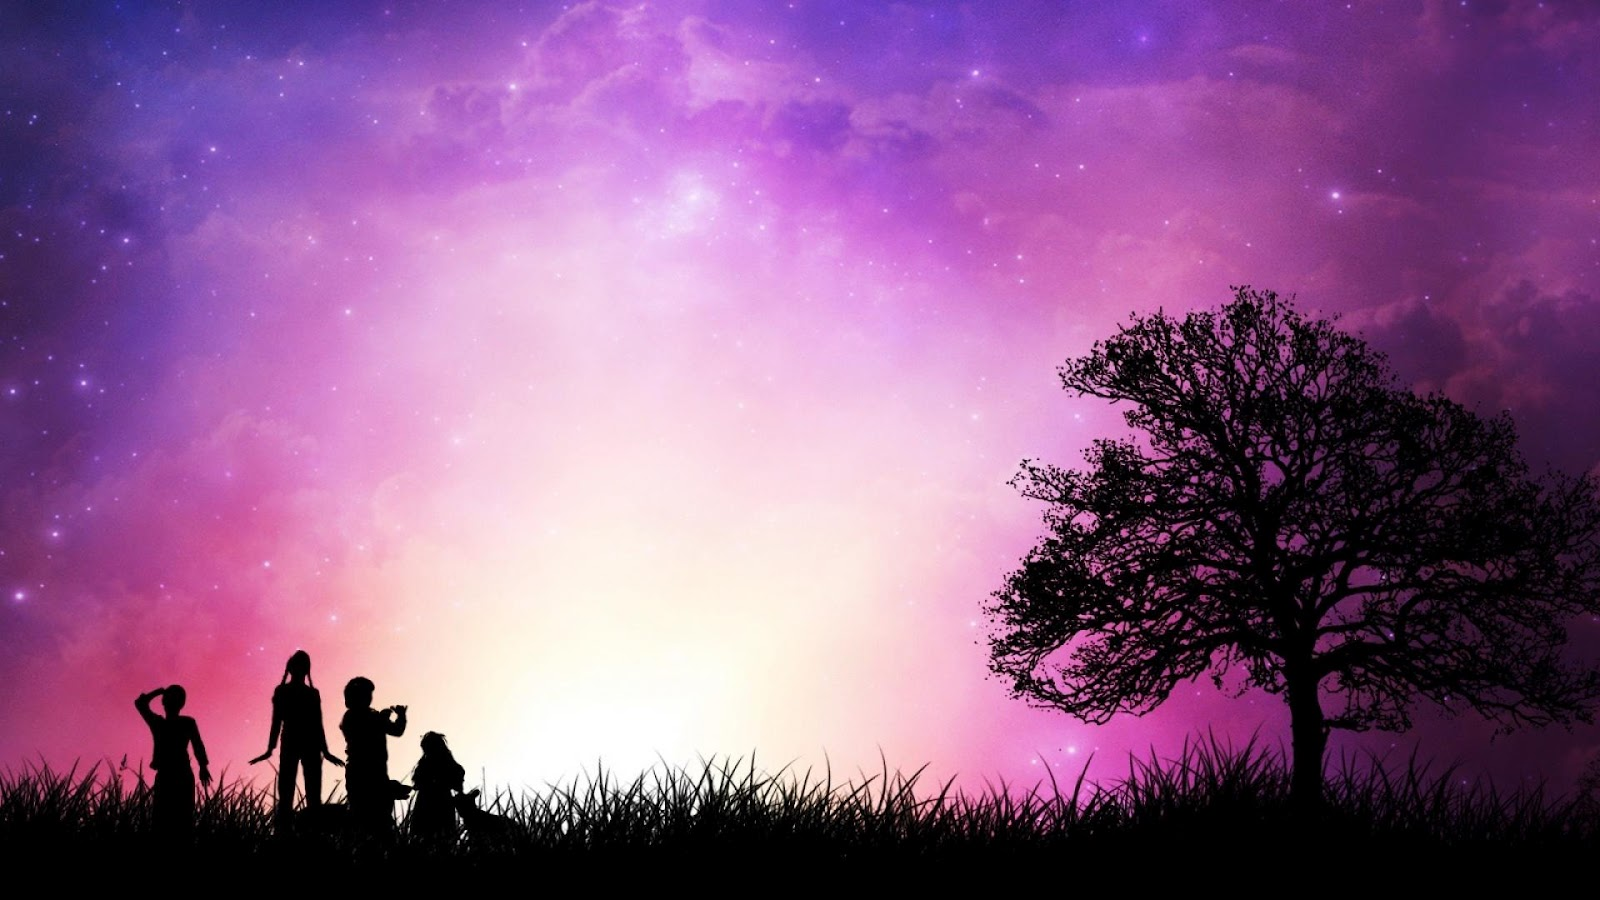 Love Wallpapers In Hd : Romantic Wallpapers HD Pictures HD Wallpapers ...